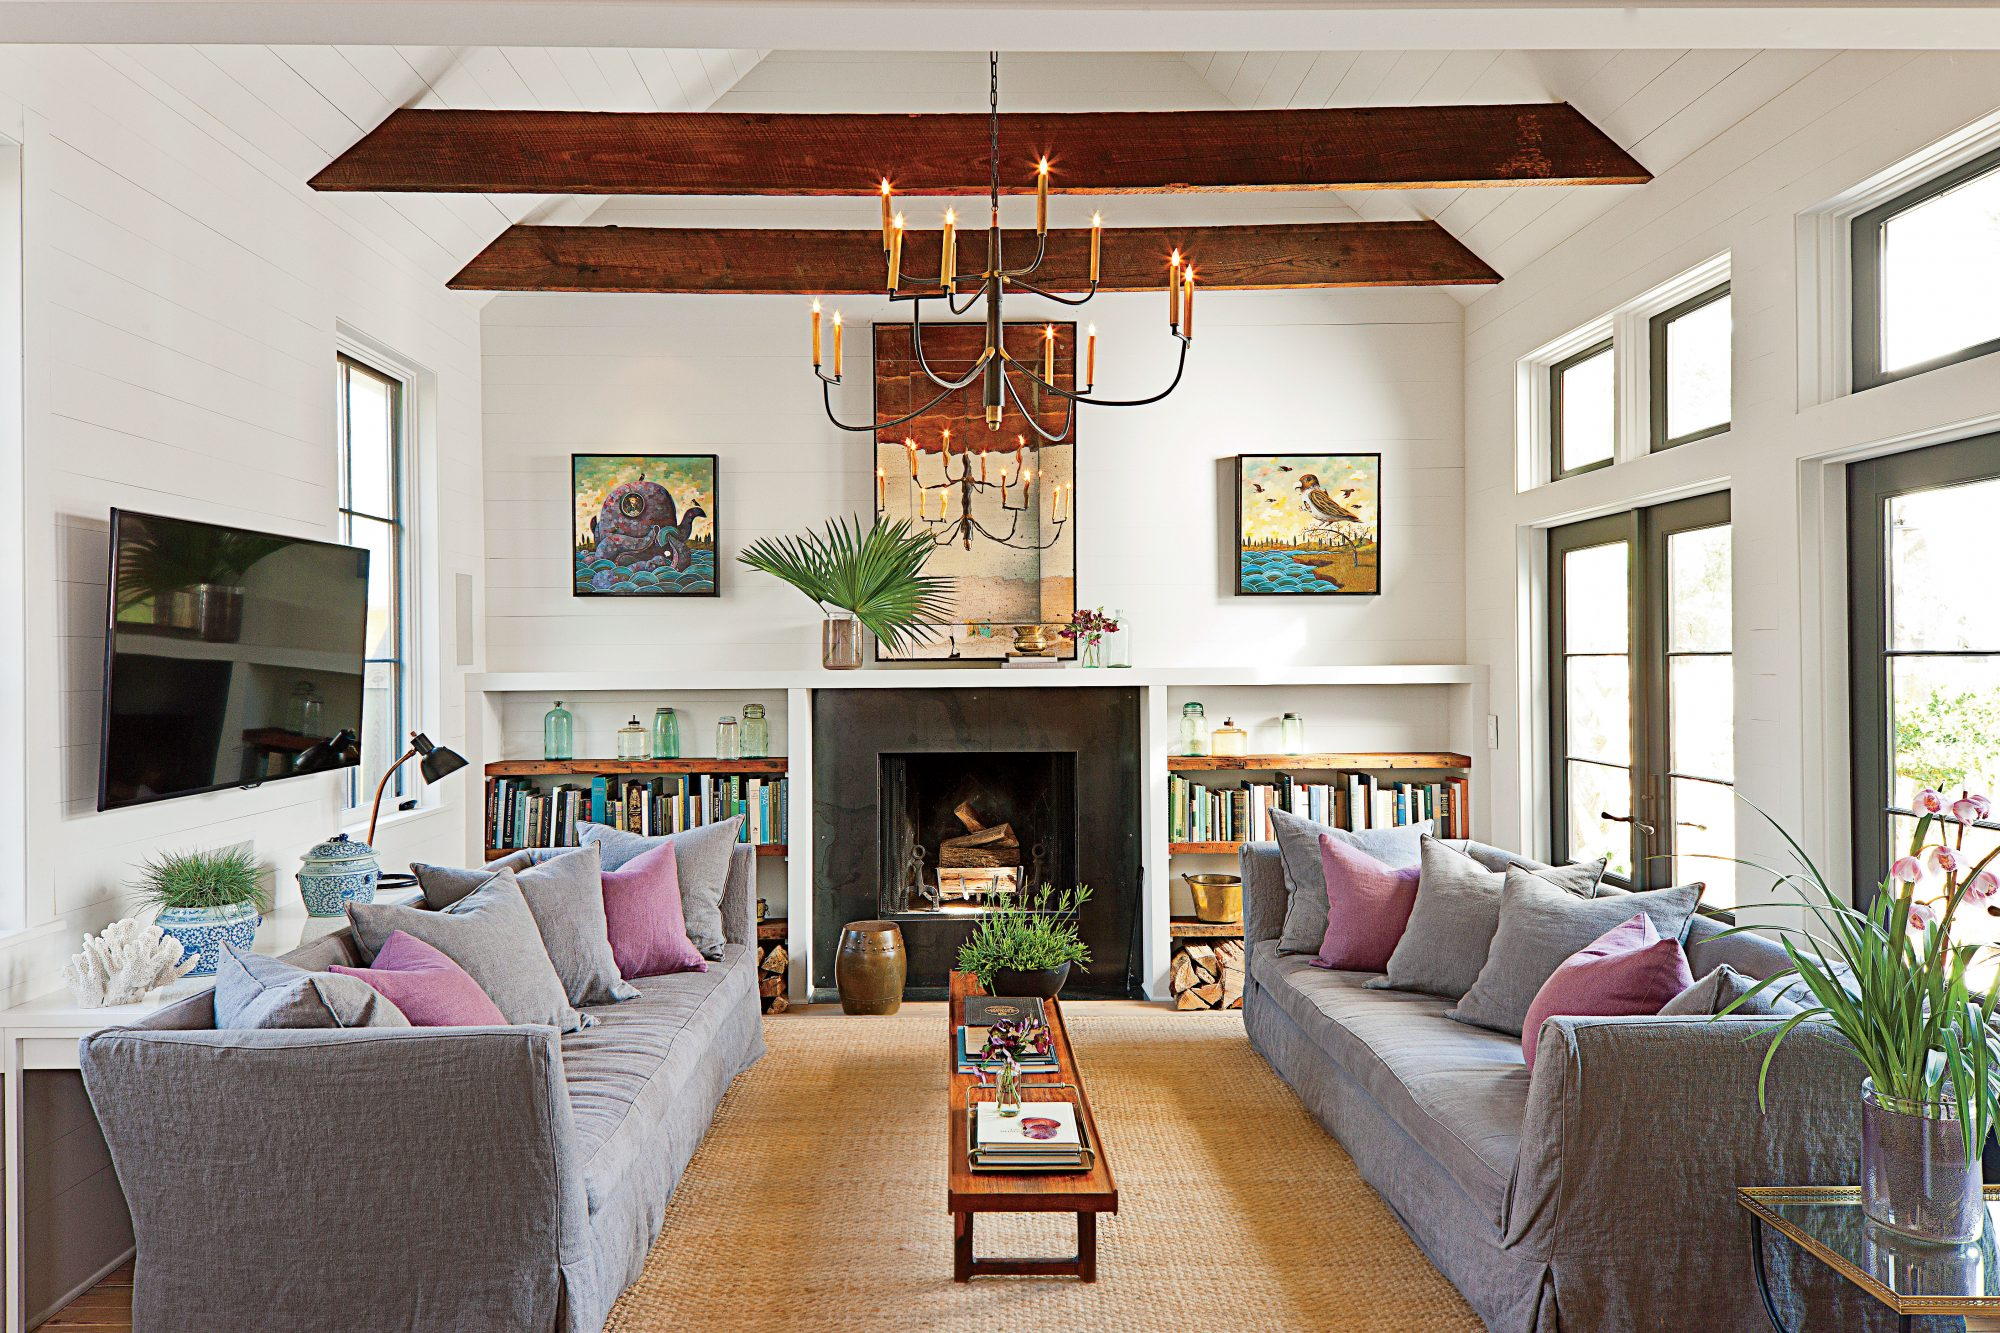 Inviting Family Room Design. 106 Living Room Decorating Ideas   Southern Living